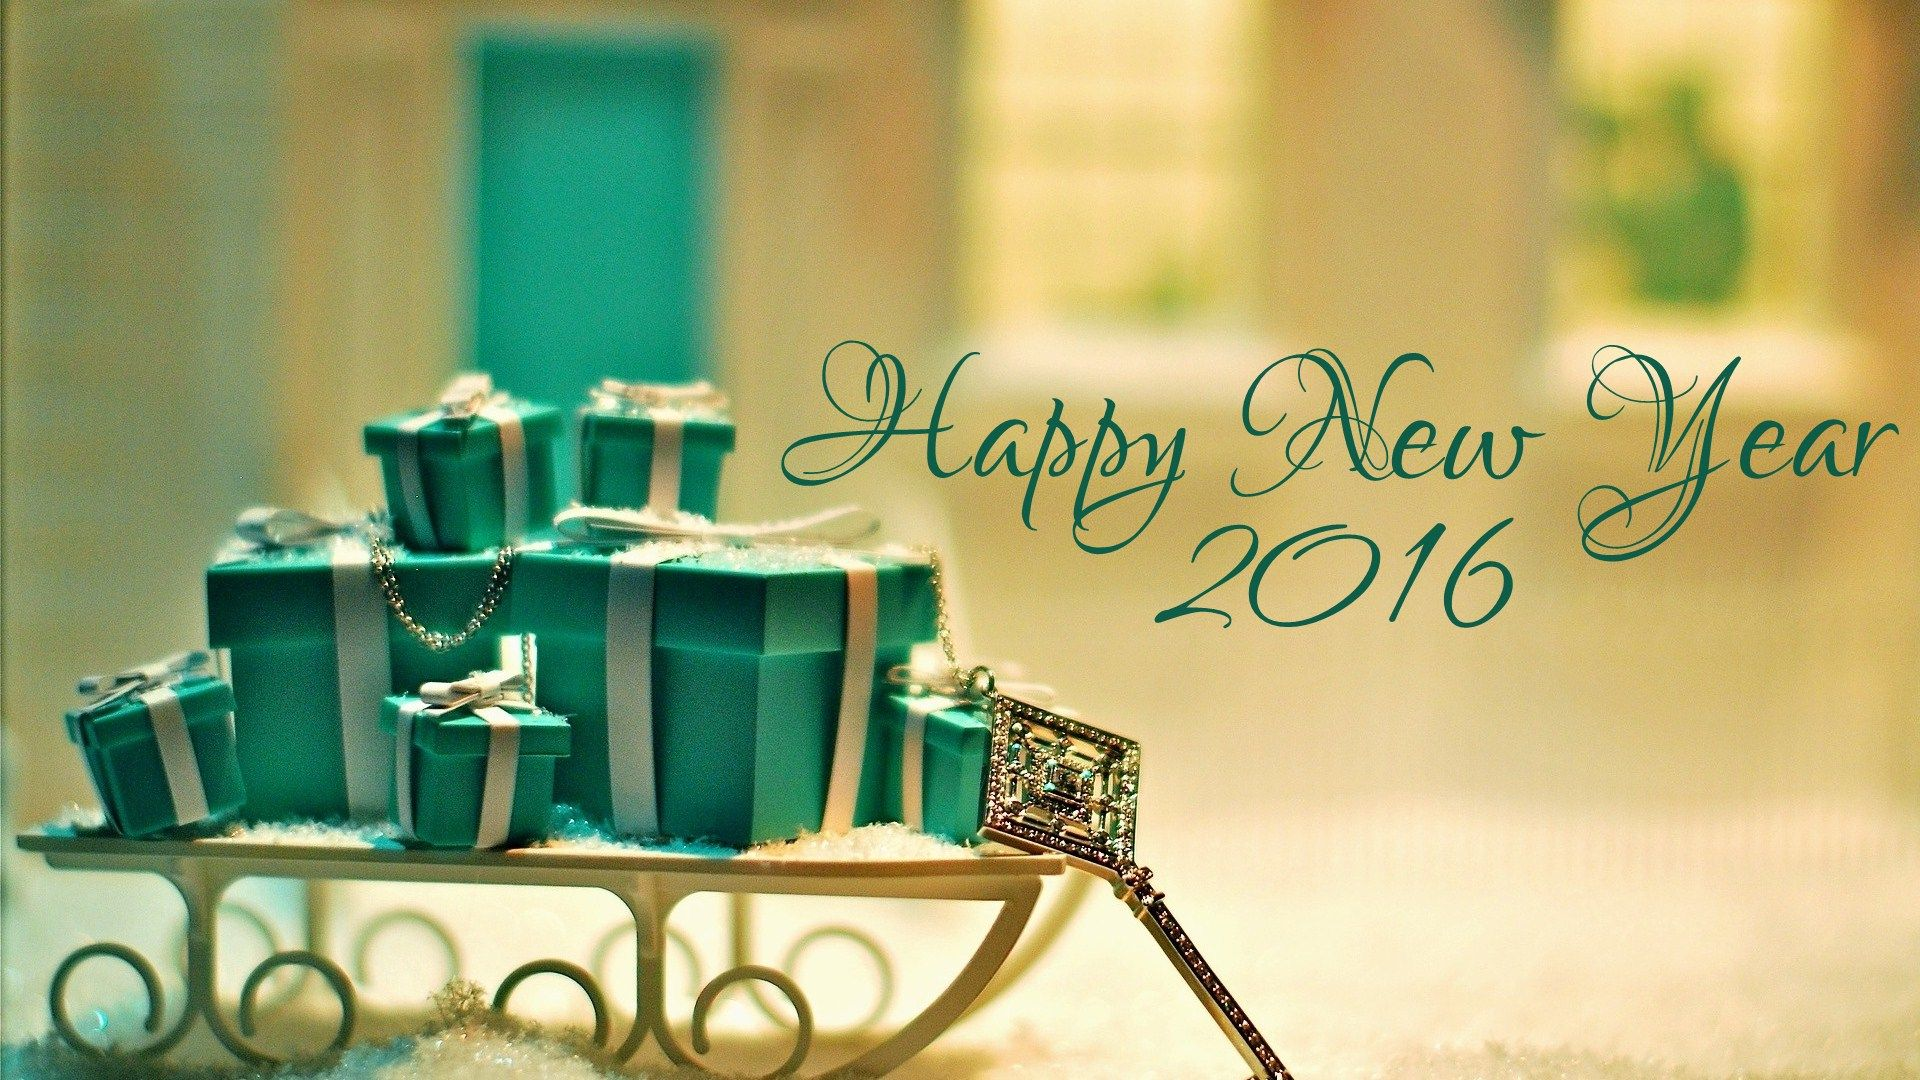 Happy new year images 2016 2016 pinterest feelings and happy new year images 2016 2016 pinterest feelings and inspirational kristyandbryce Images